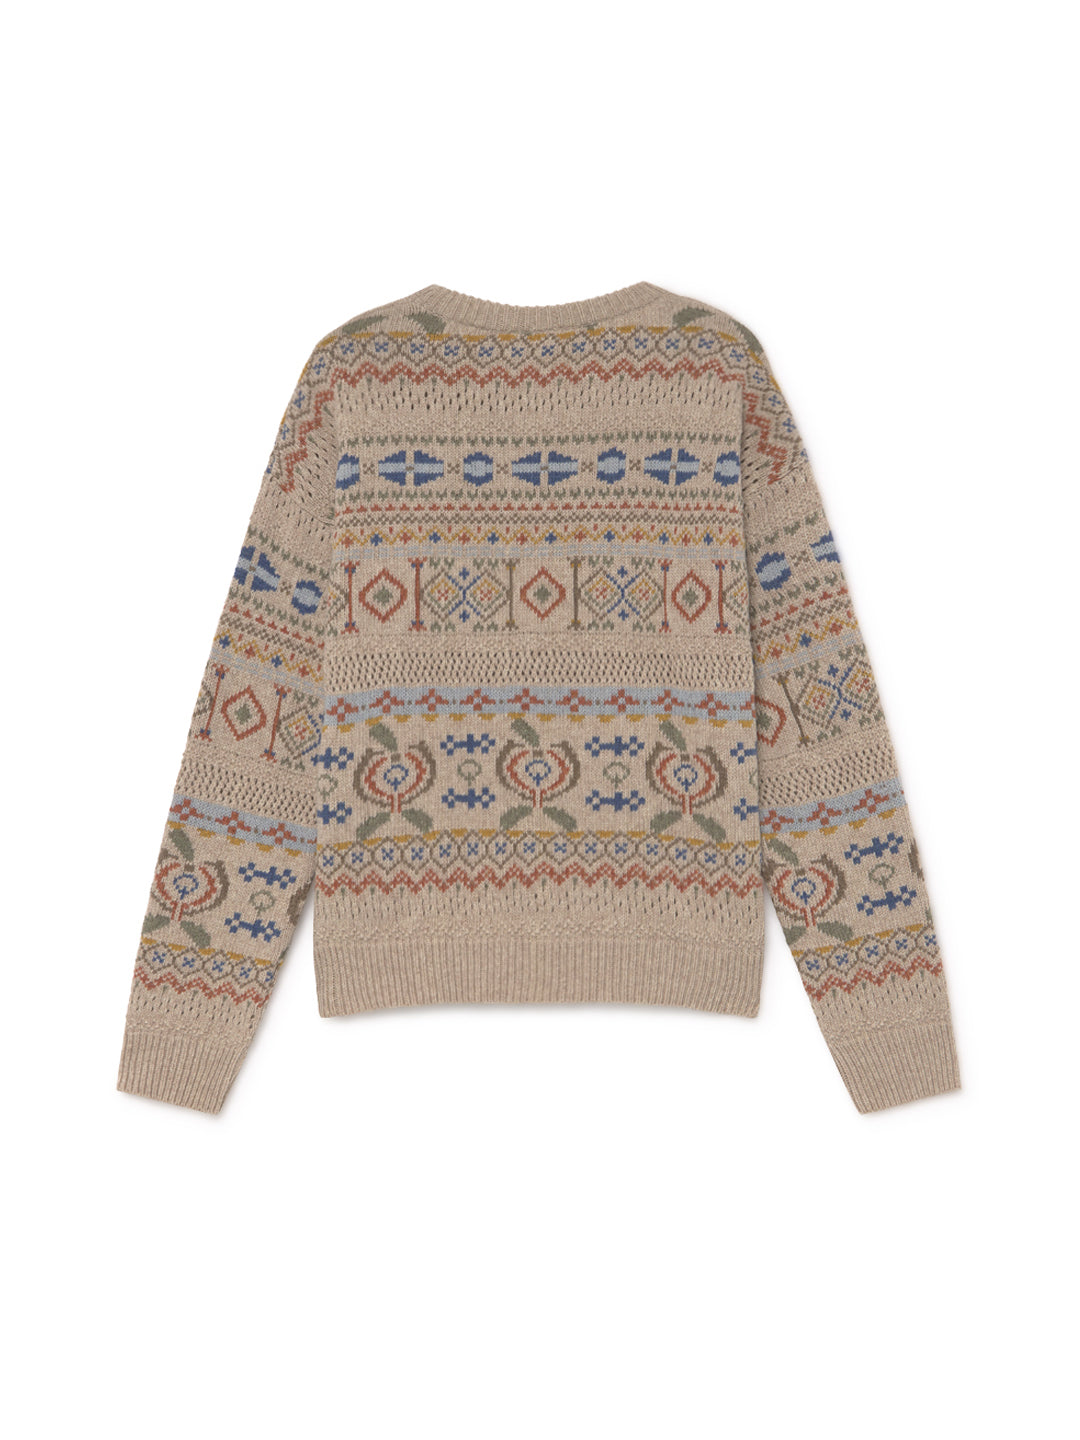 TWOTHIRDS Womens Knit: Java - Jacquard back